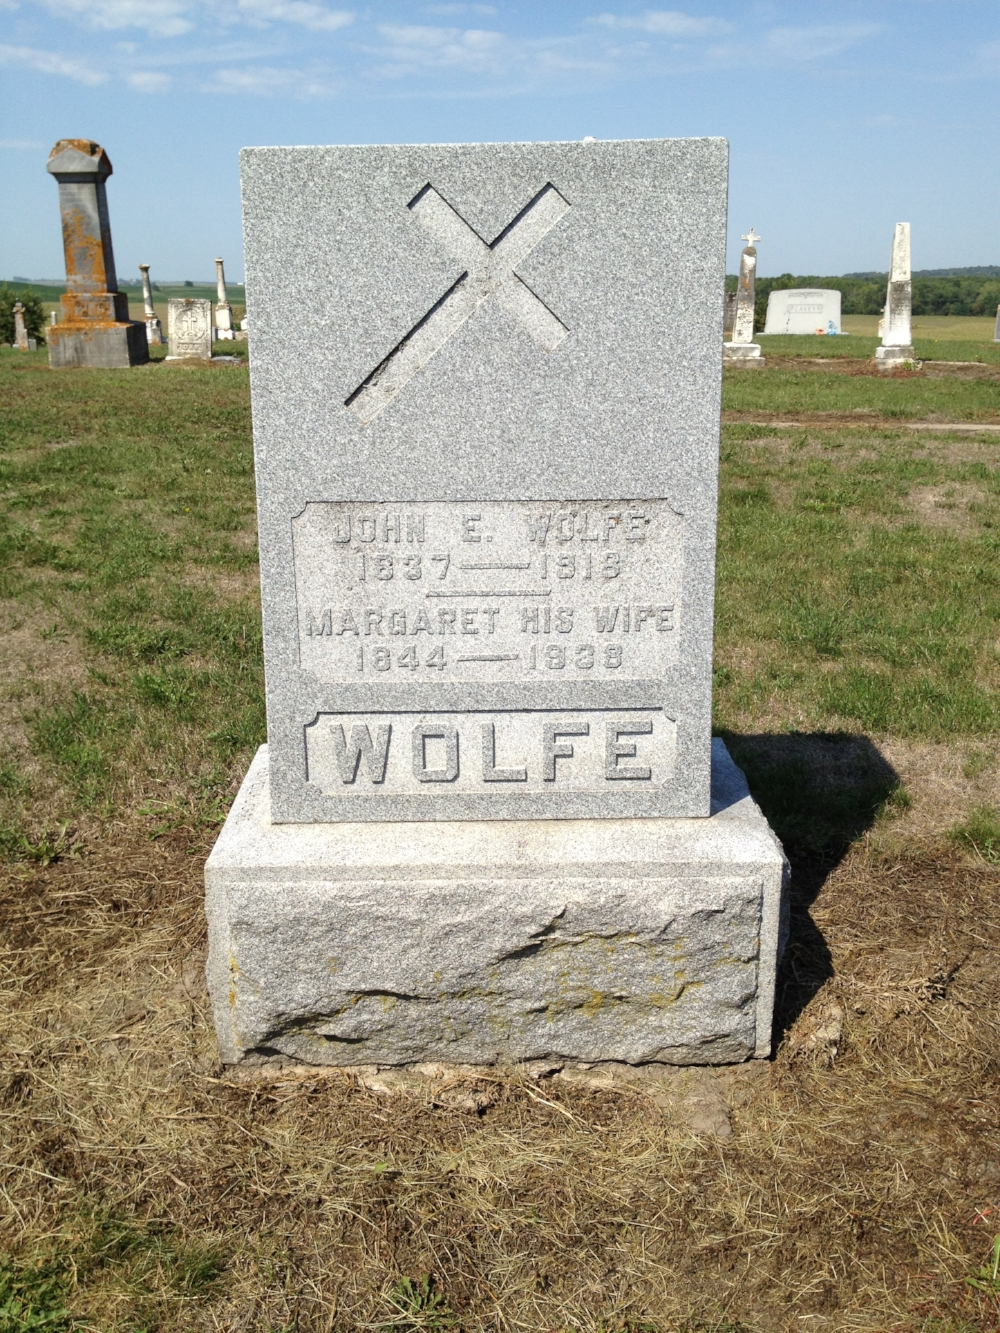 Gravestone of John E. Wolfe, Saint James Cemetery, Toronto, Iowa